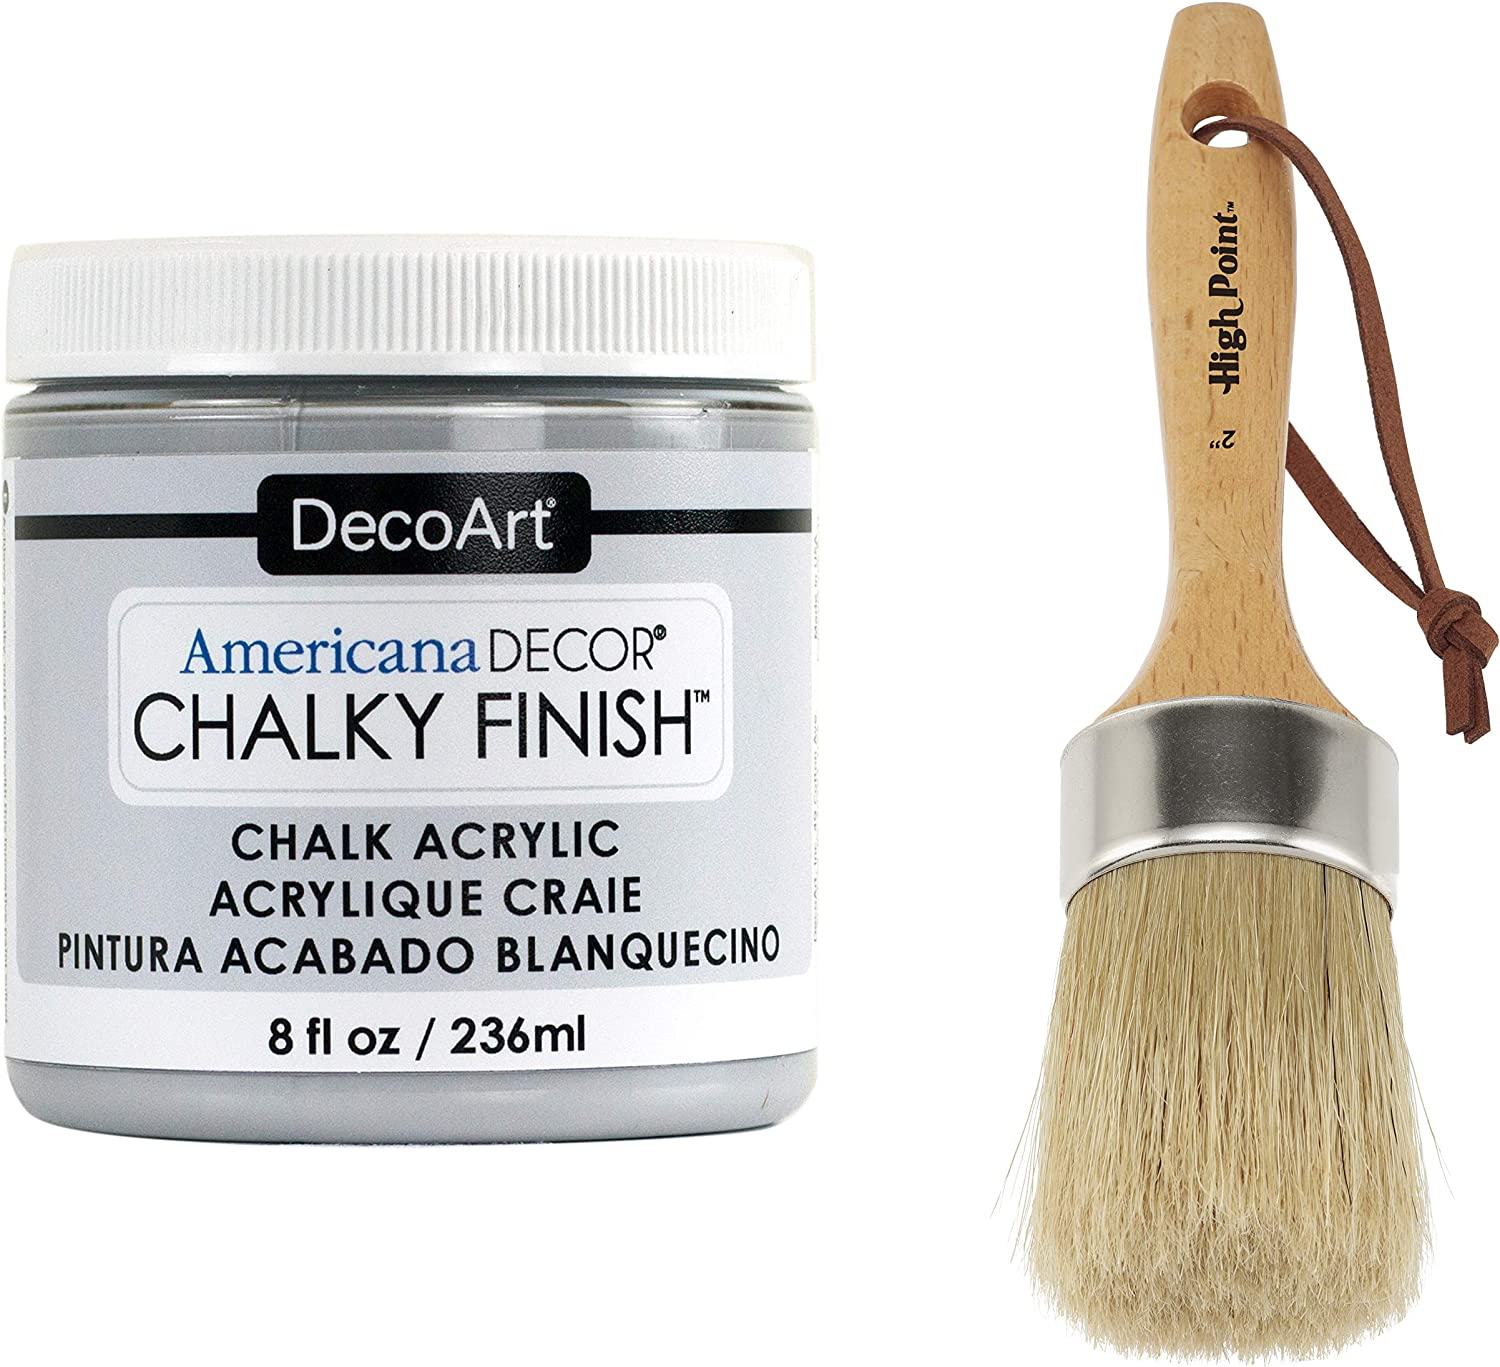 DecoArt Americana Décor Chalky Flat Finish Paint and 2